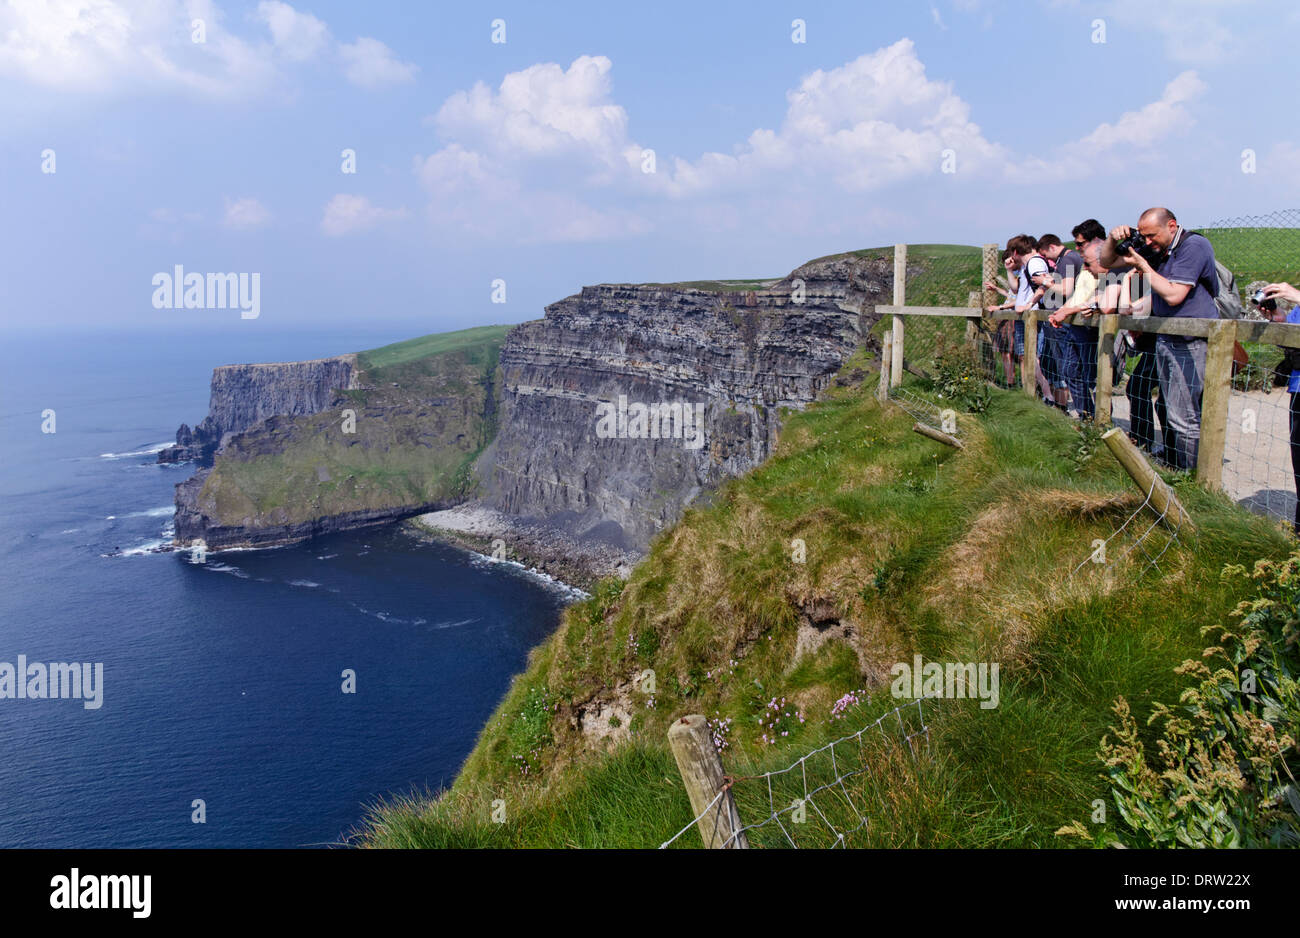 The cliffs of Moher in County Clare Ireland - Stock Image